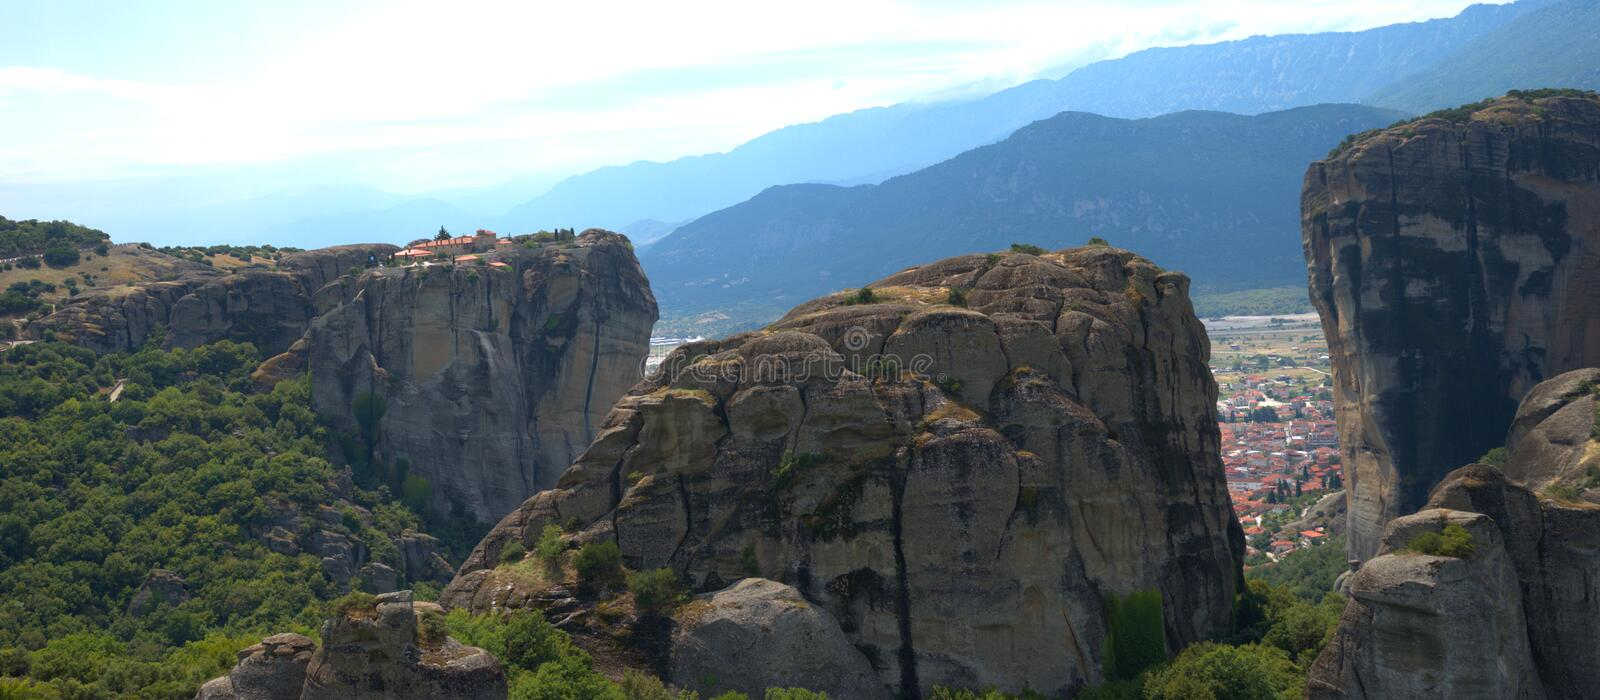 8/10/2020 Greece , Meteora . A unique phenomenon of huge rocks and Byzantine. Metéora is the second largest monastic and pilgrimage area in Greece after Mount royalty free stock images